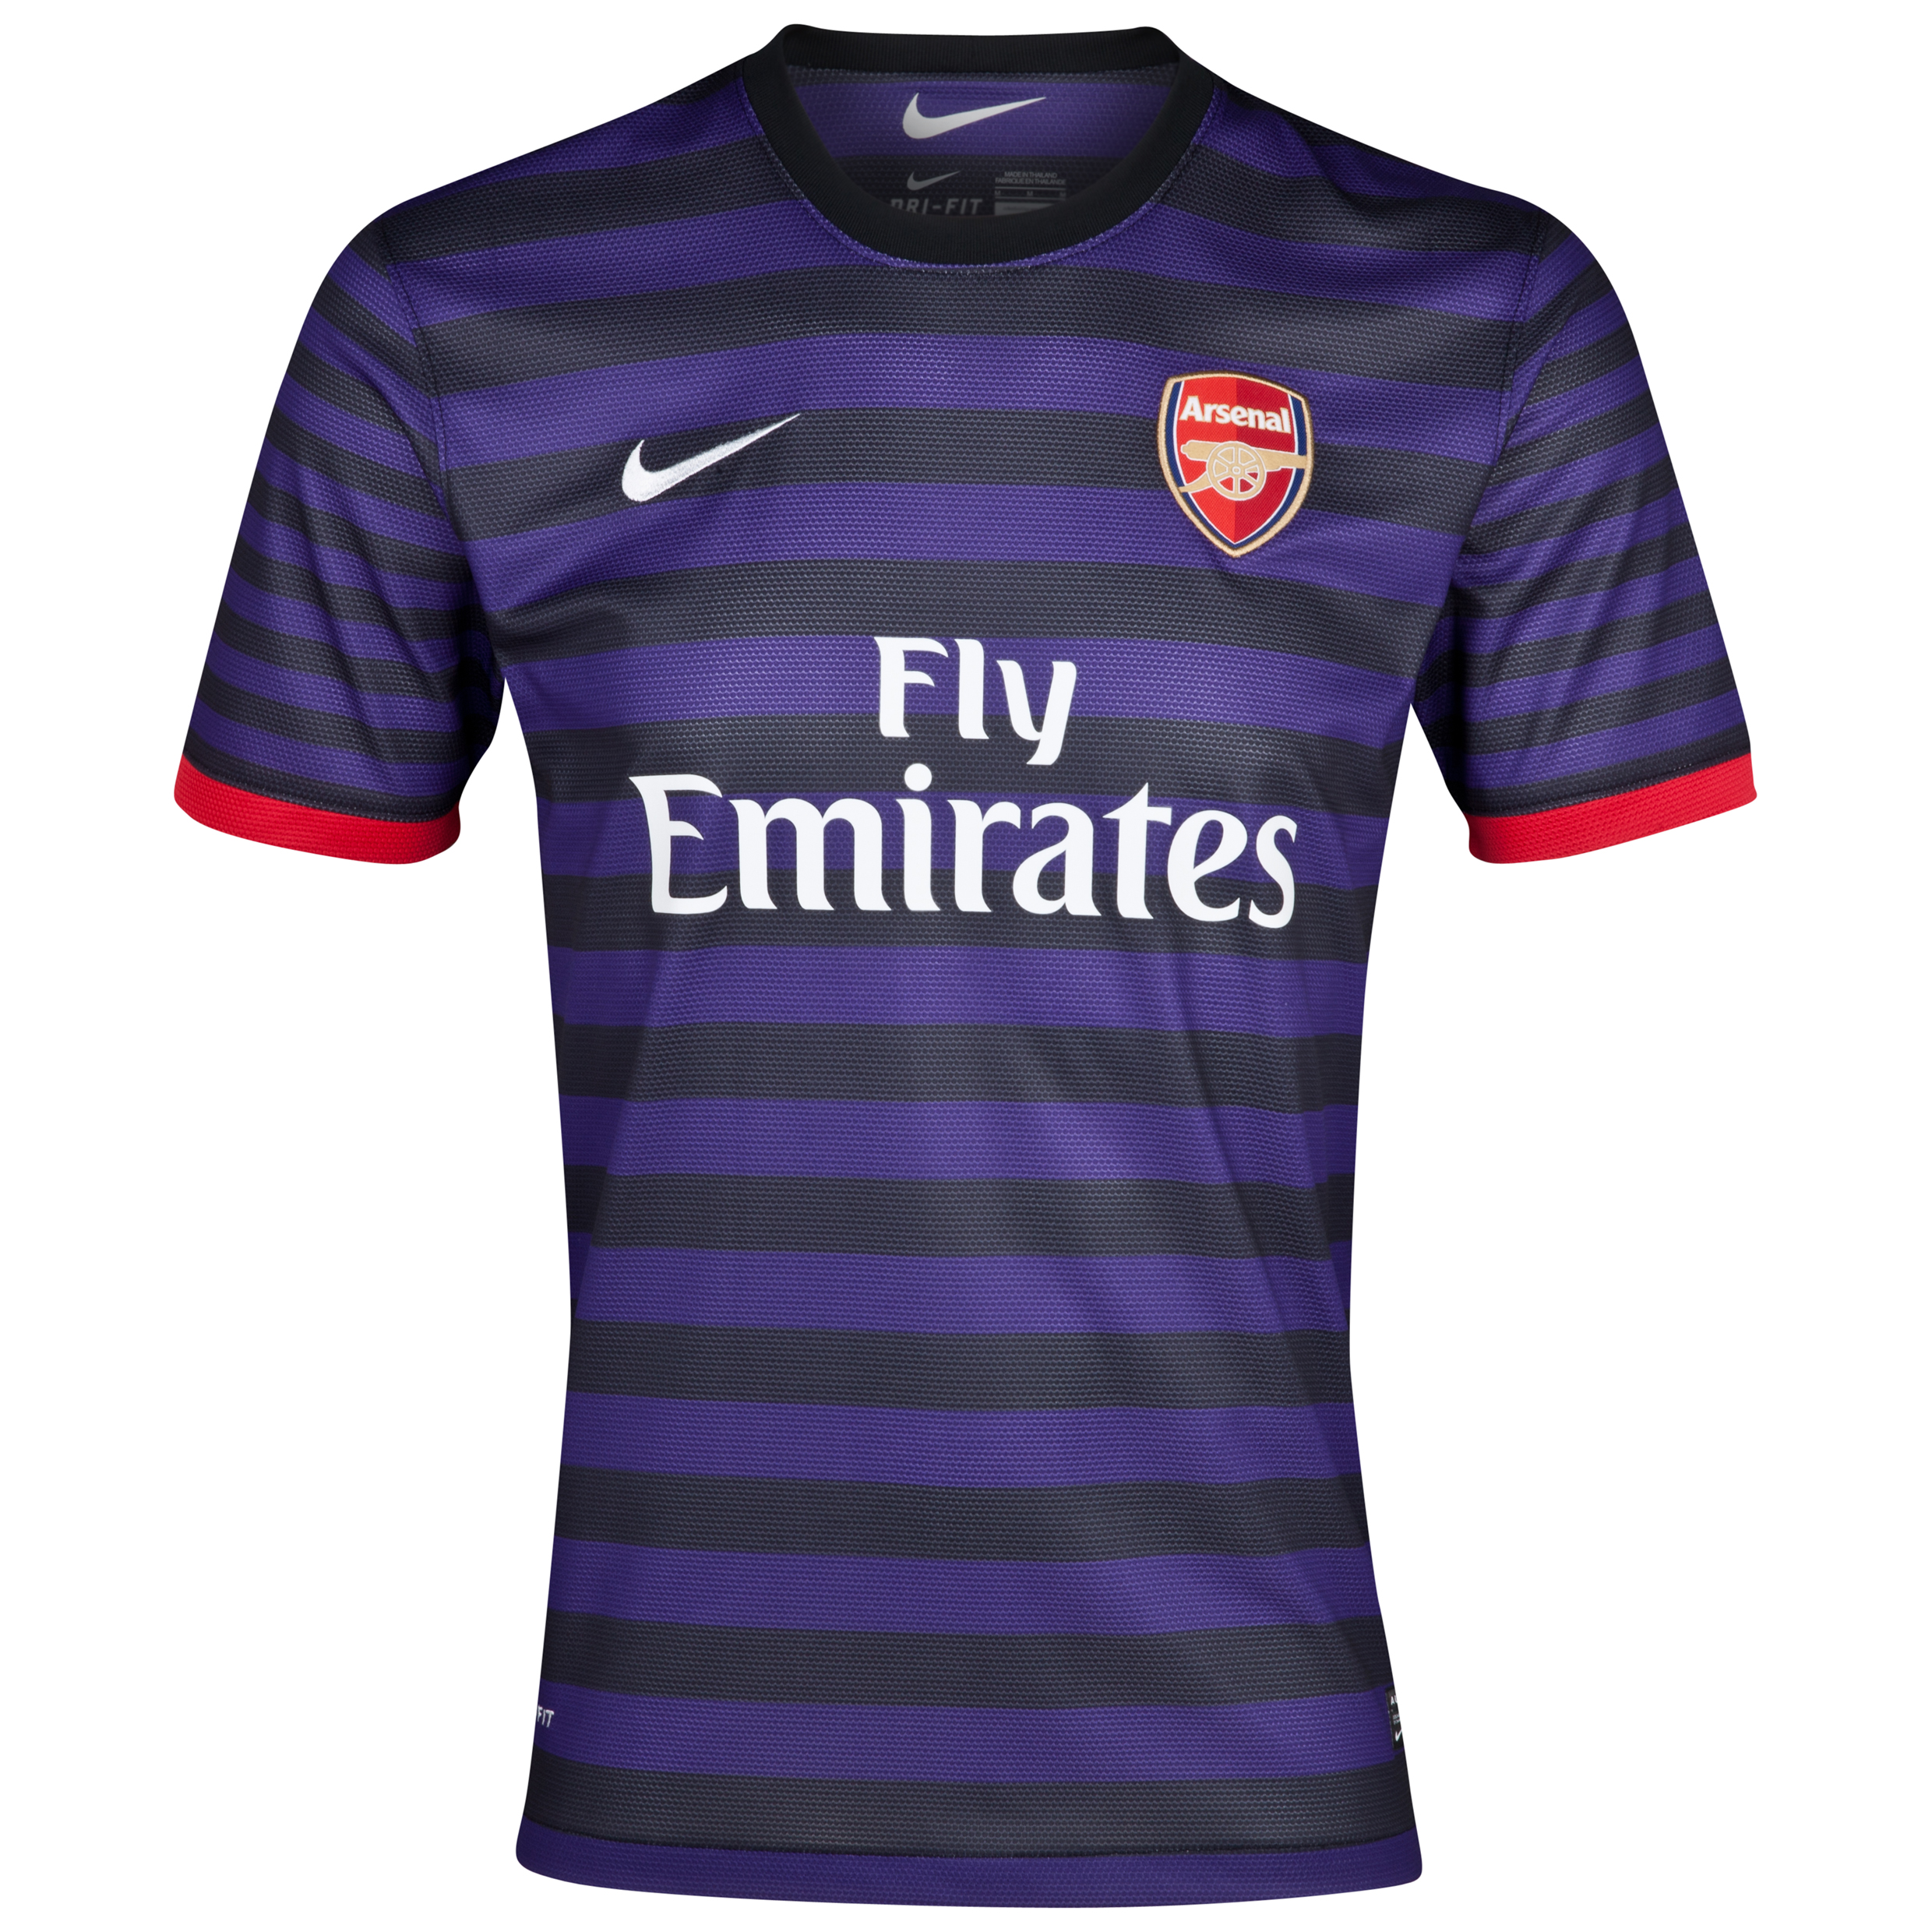 Arsenal Away Shirt  2012/13 - Youths